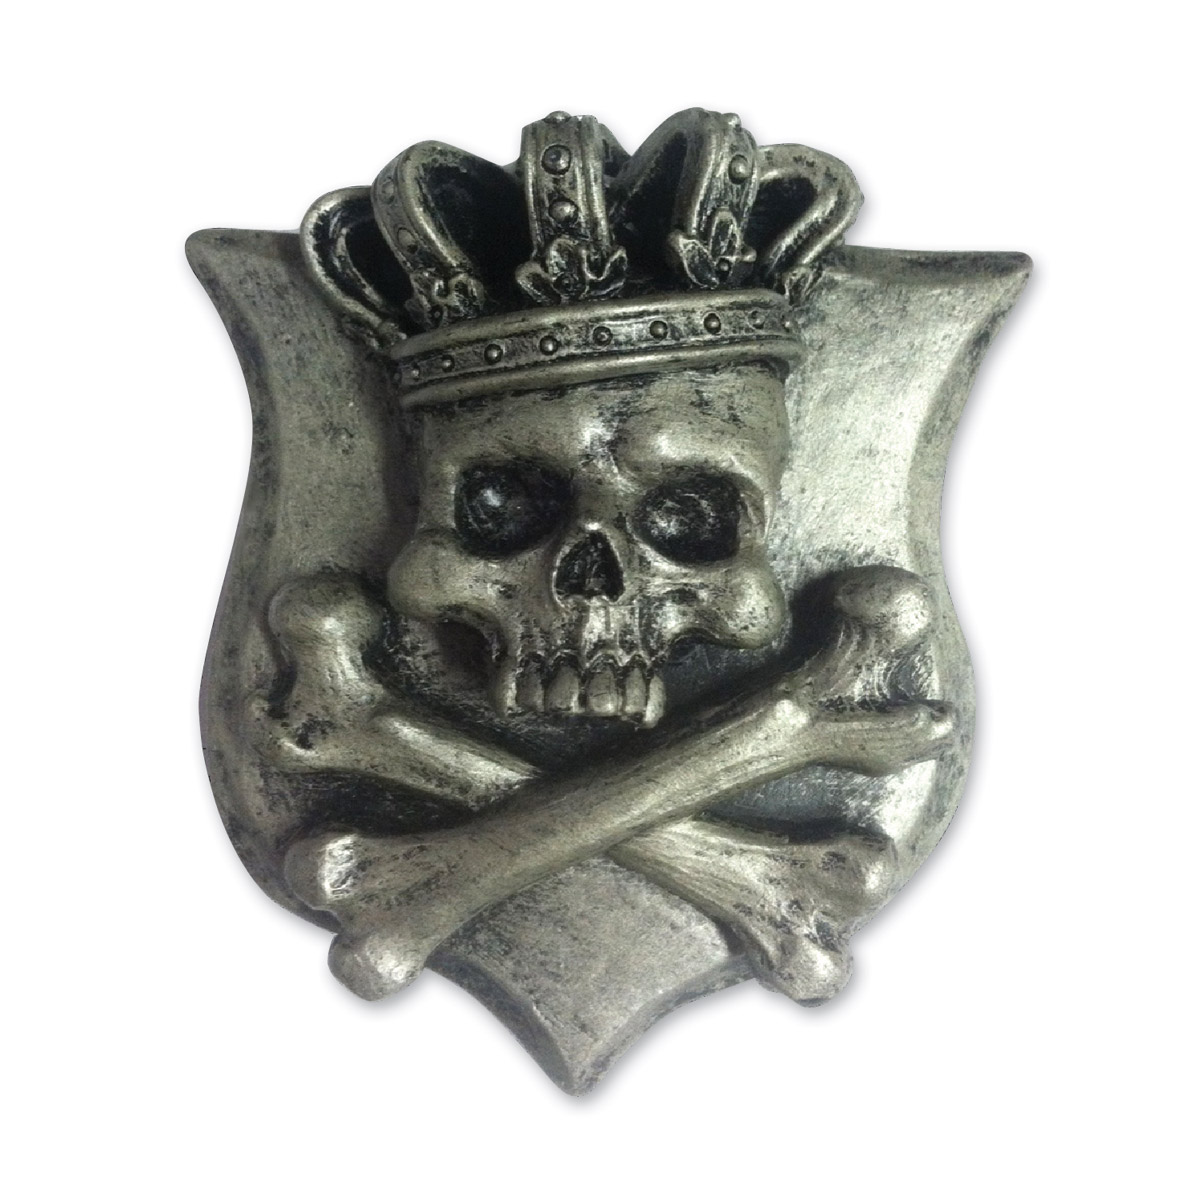 Lethal Threat King Skull 3-D Emblem